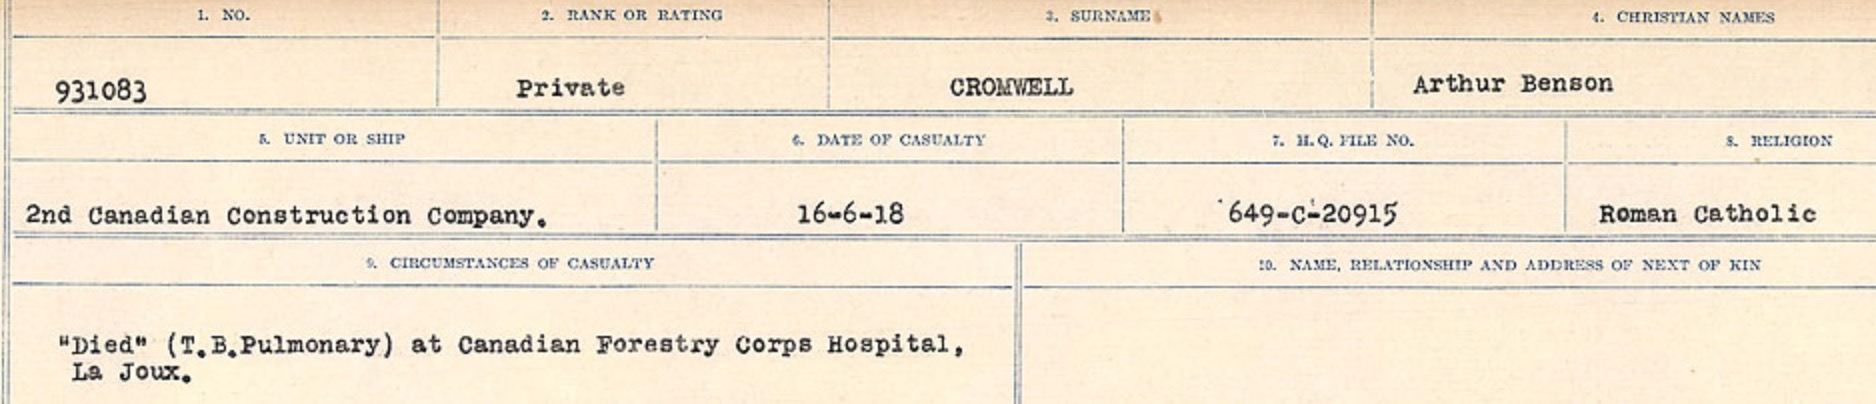 Circumstances of death registers– Source: Library and Archives Canada. CIRCUMSTANCES OF DEATH REGISTERS, FIRST WORLD WAR Surnames: CRABB TO CROSSLAND Microform Sequence 24; Volume Number 31829_B016733. Reference RG150, 1992-93/314, 168. Page 649 of 788.